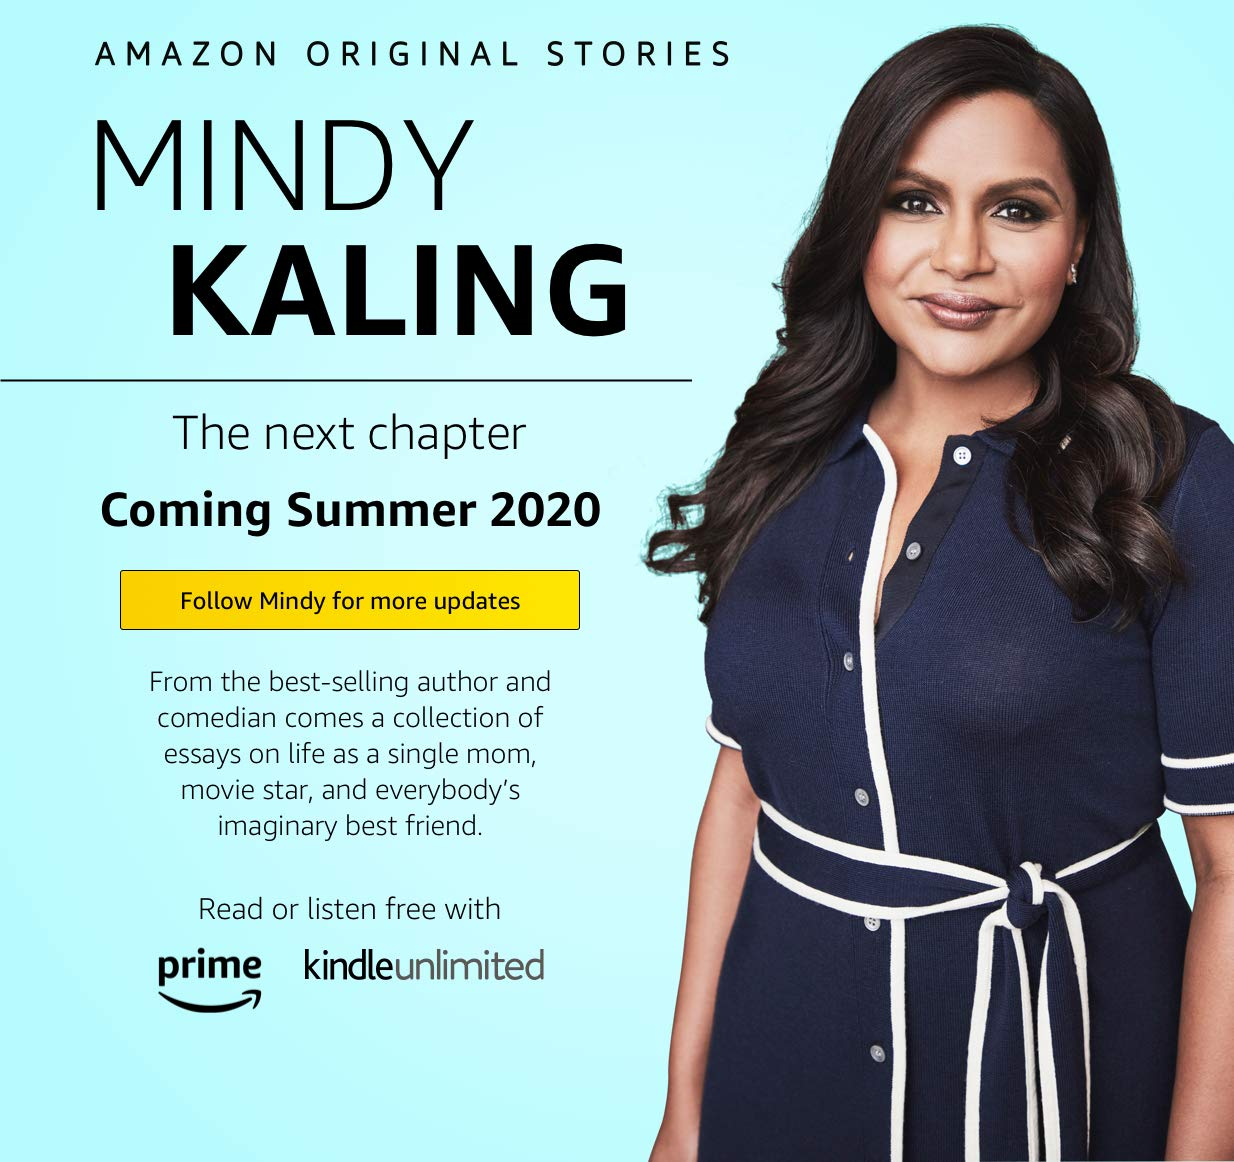 Mindy Kaling Coming Soon to Amazon Original Stories. Follow the Author to stay informed.